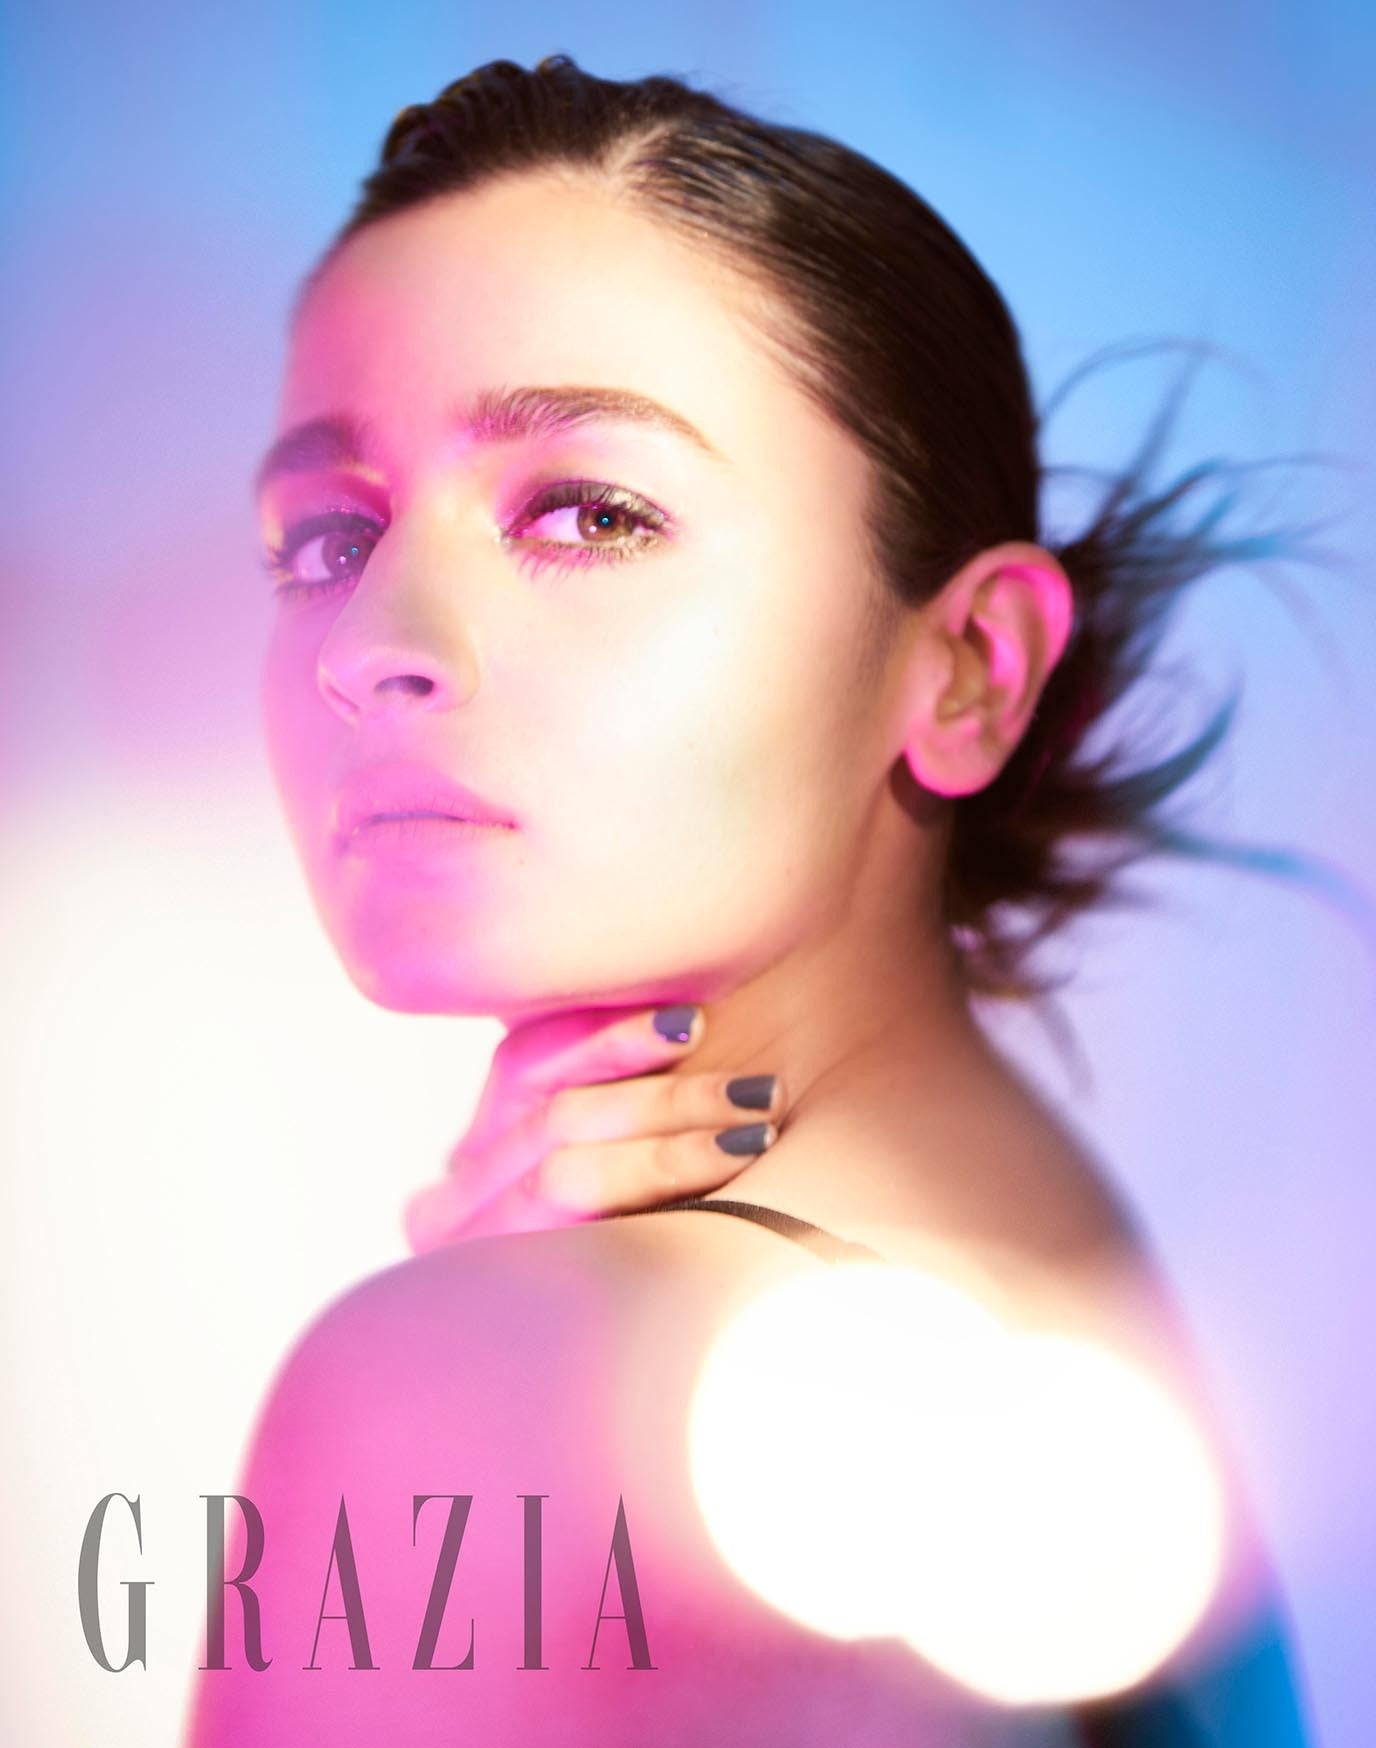 Alia Bhatt Graced the Cover of Fashion Magazine Grazia